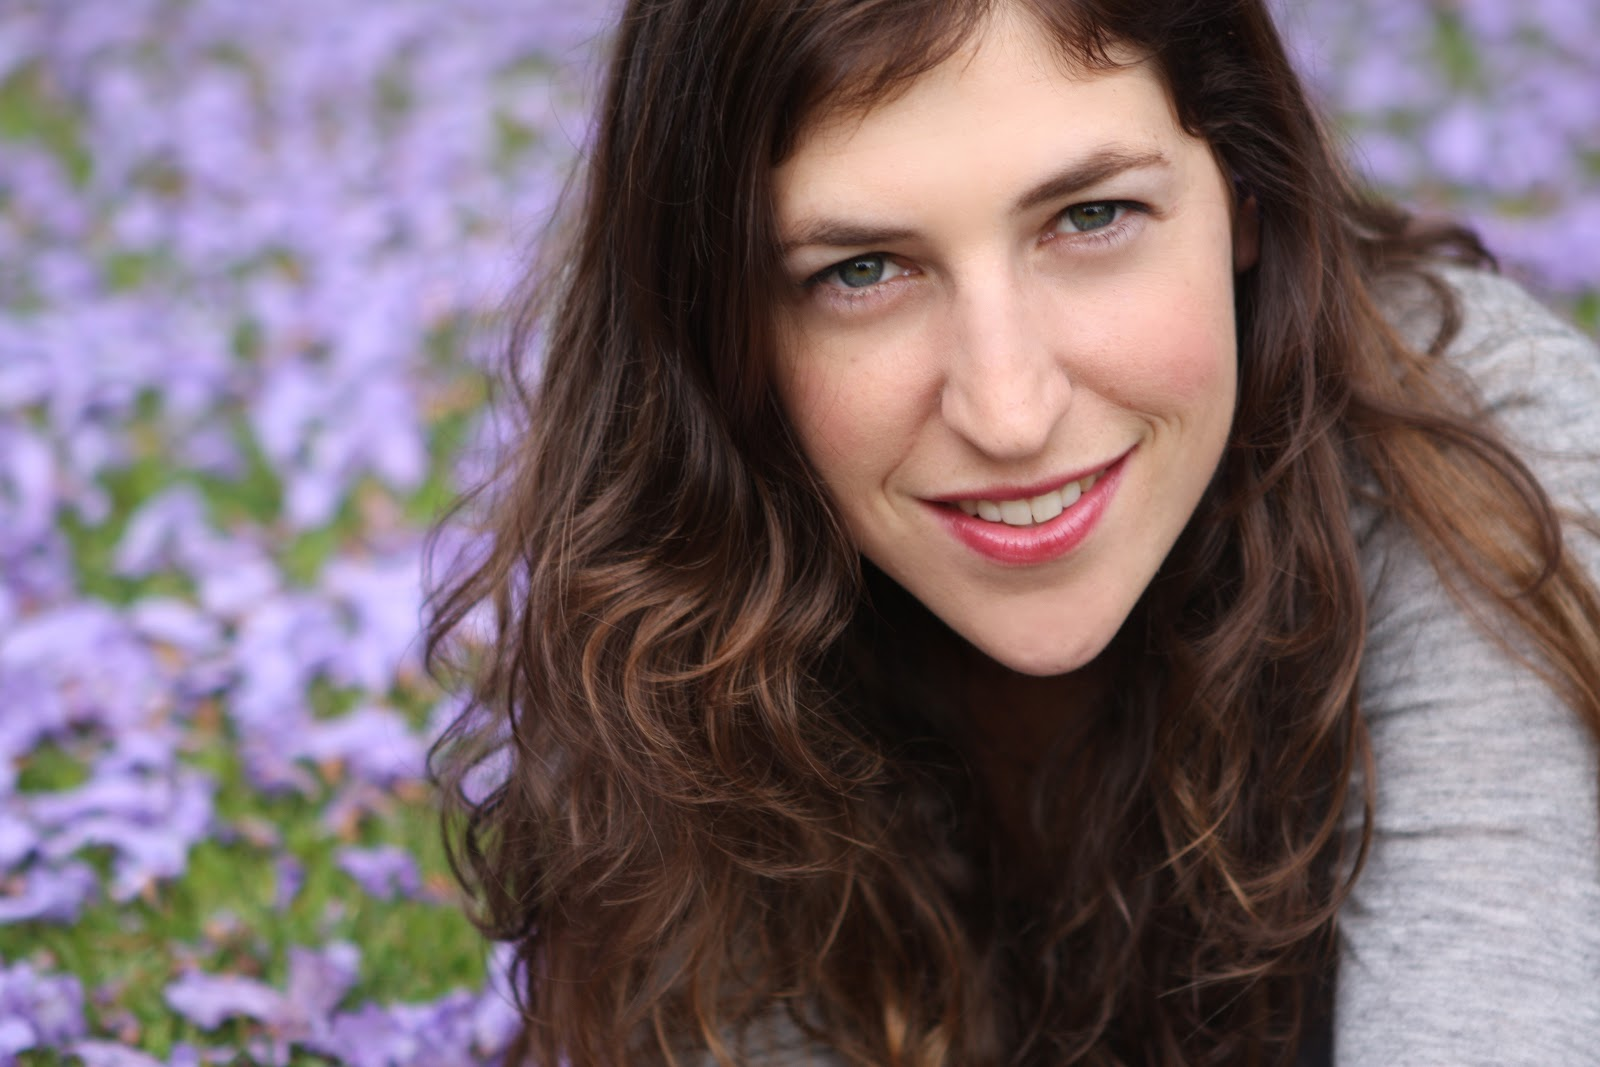 Mayim Bialik - Mayim Bialik Photo (32458348) - Fanpop fanclubs